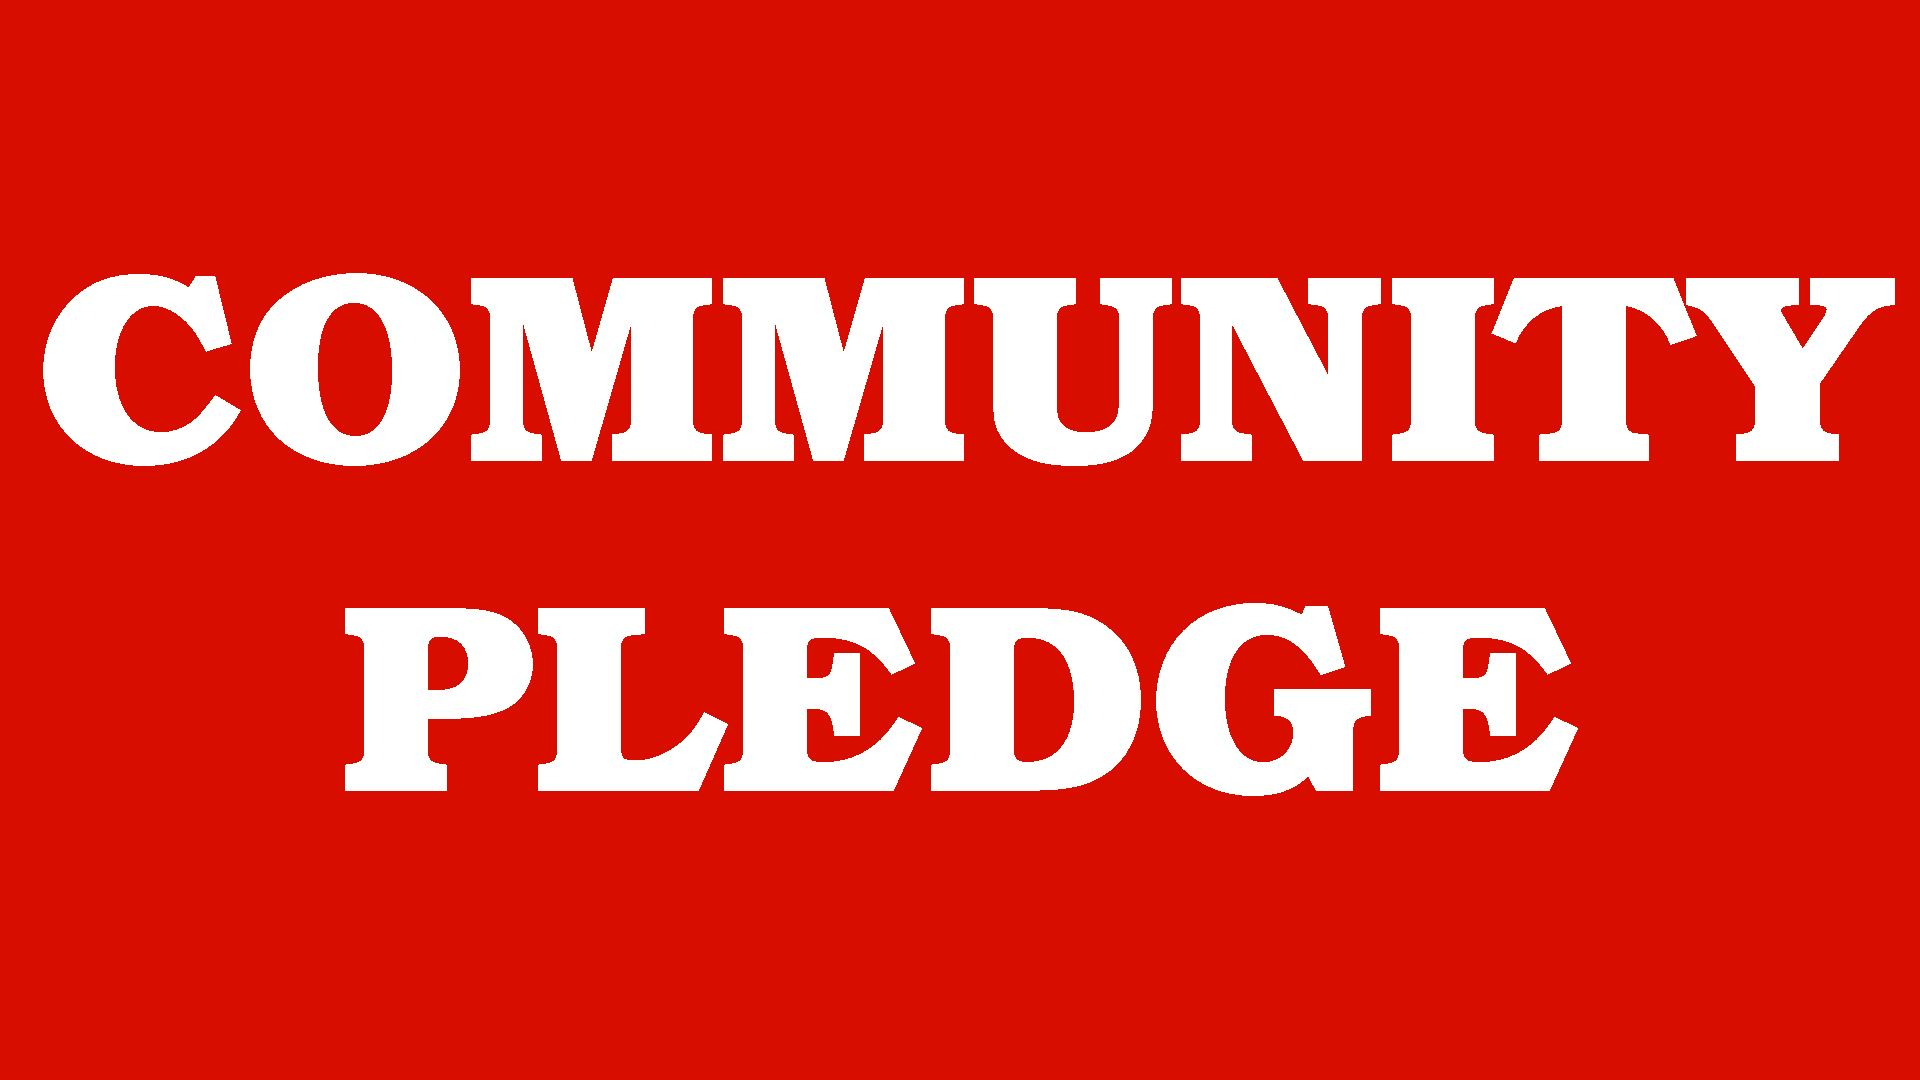 Community Pledge